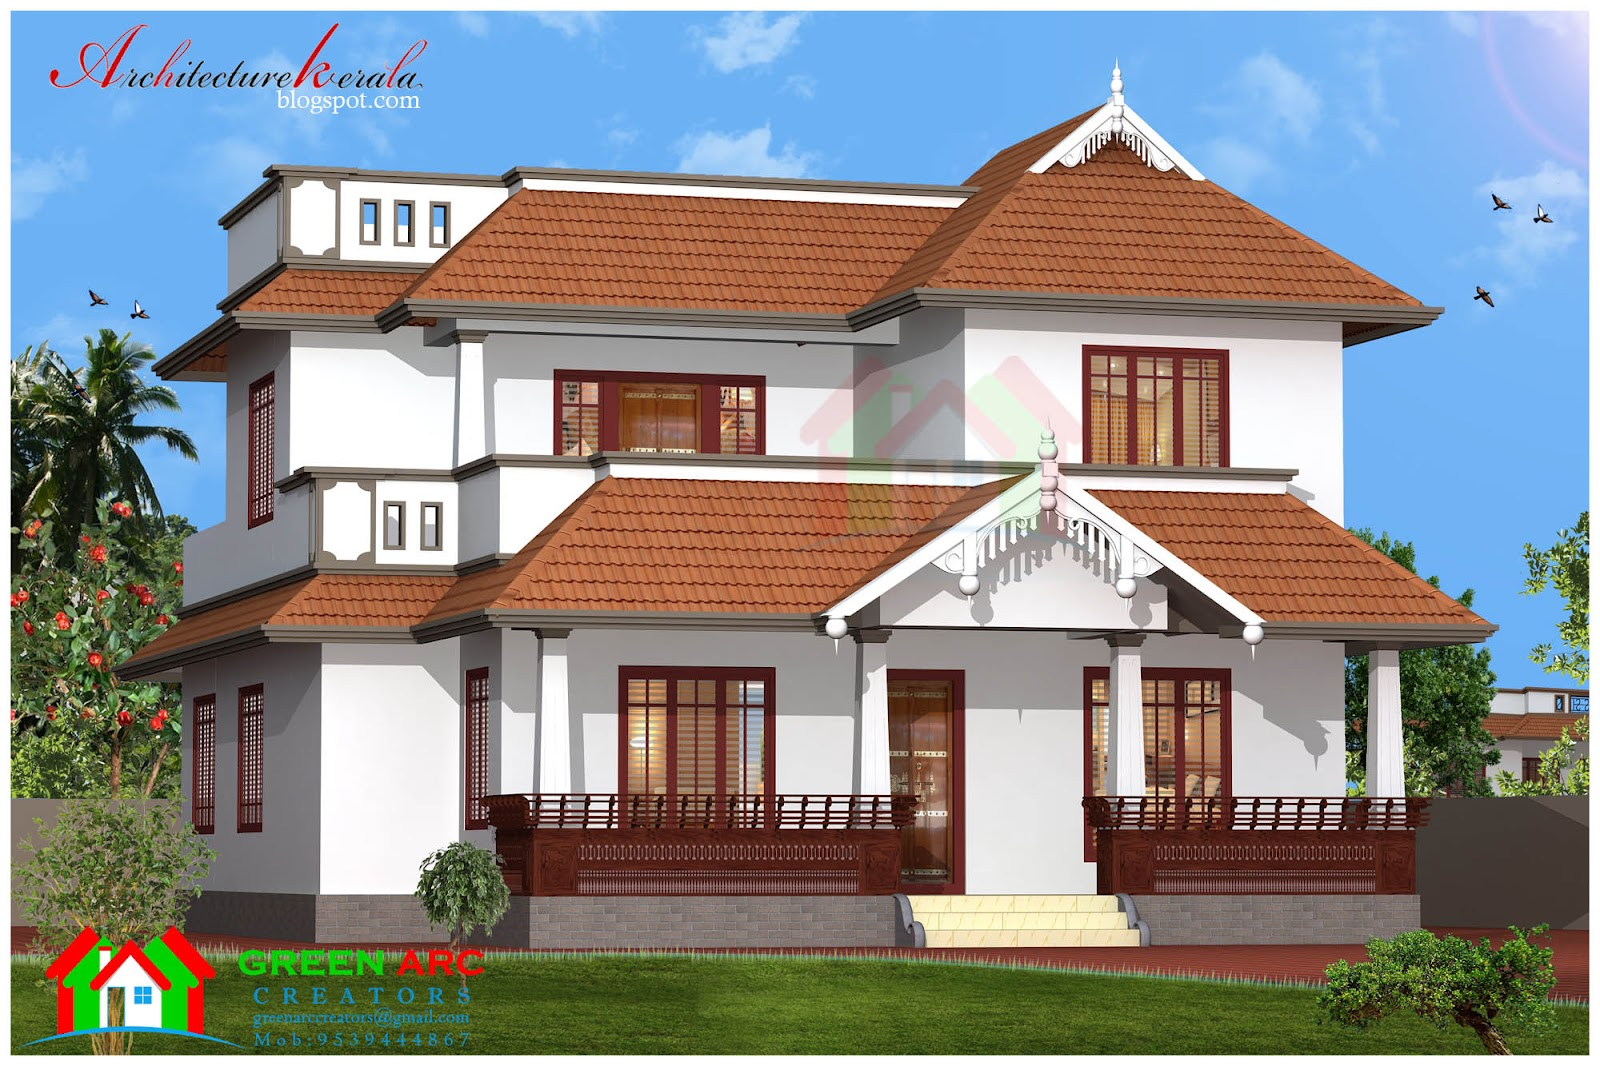 Architecture kerala traditional style kerala house plan for Classical house plans